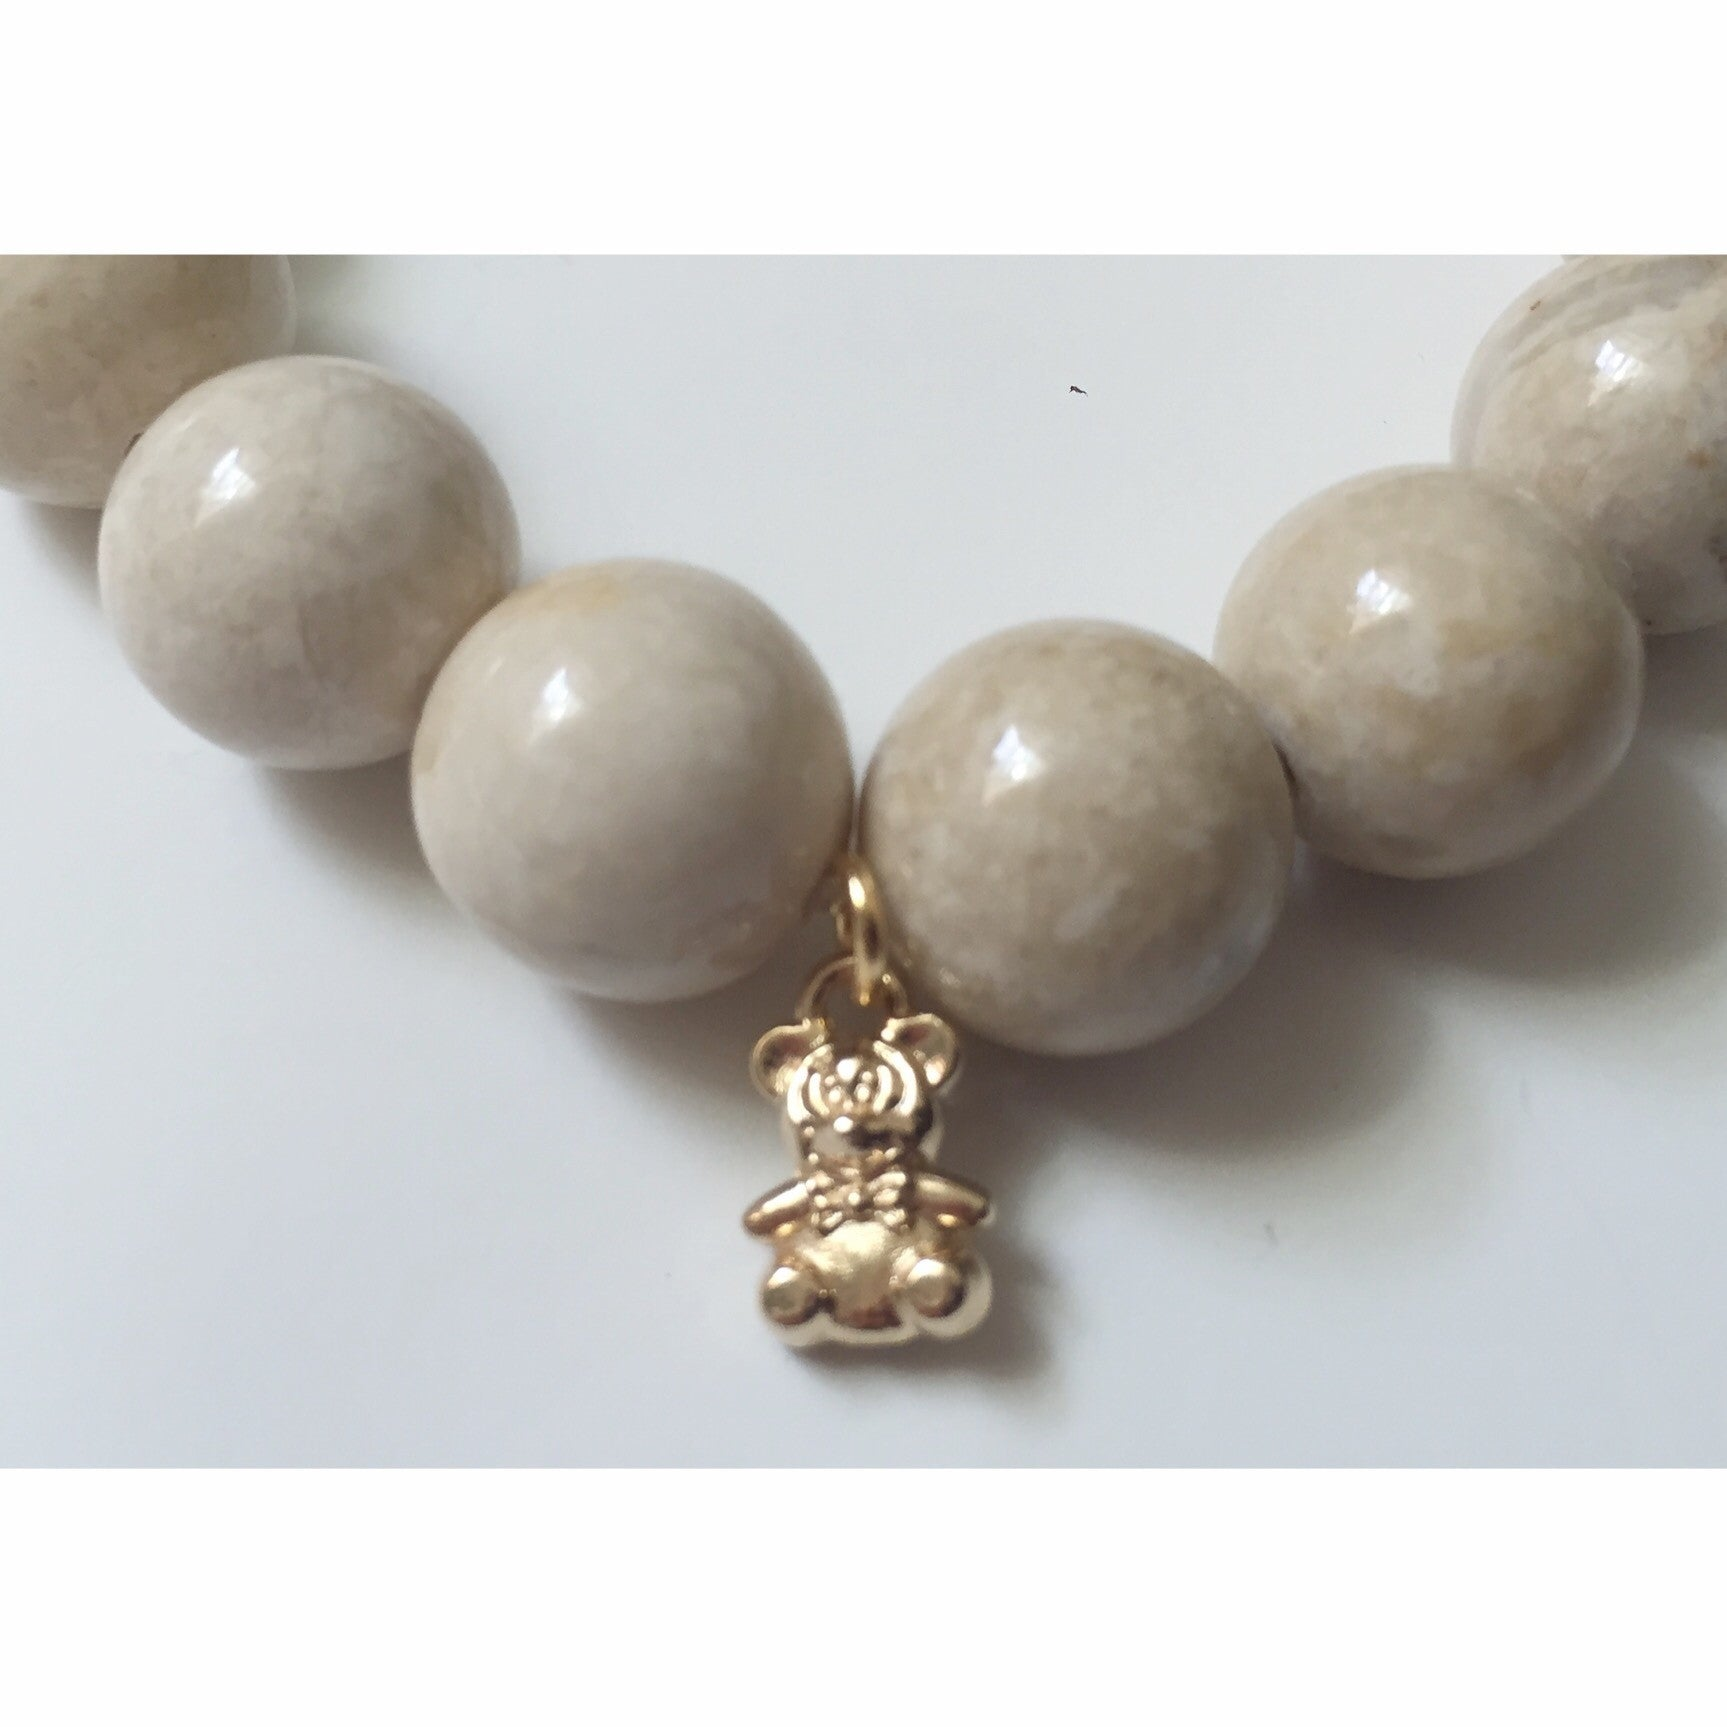 Beige Riverstone with Gold Gummy Bear Pendant - Oriana Lamarca LLC